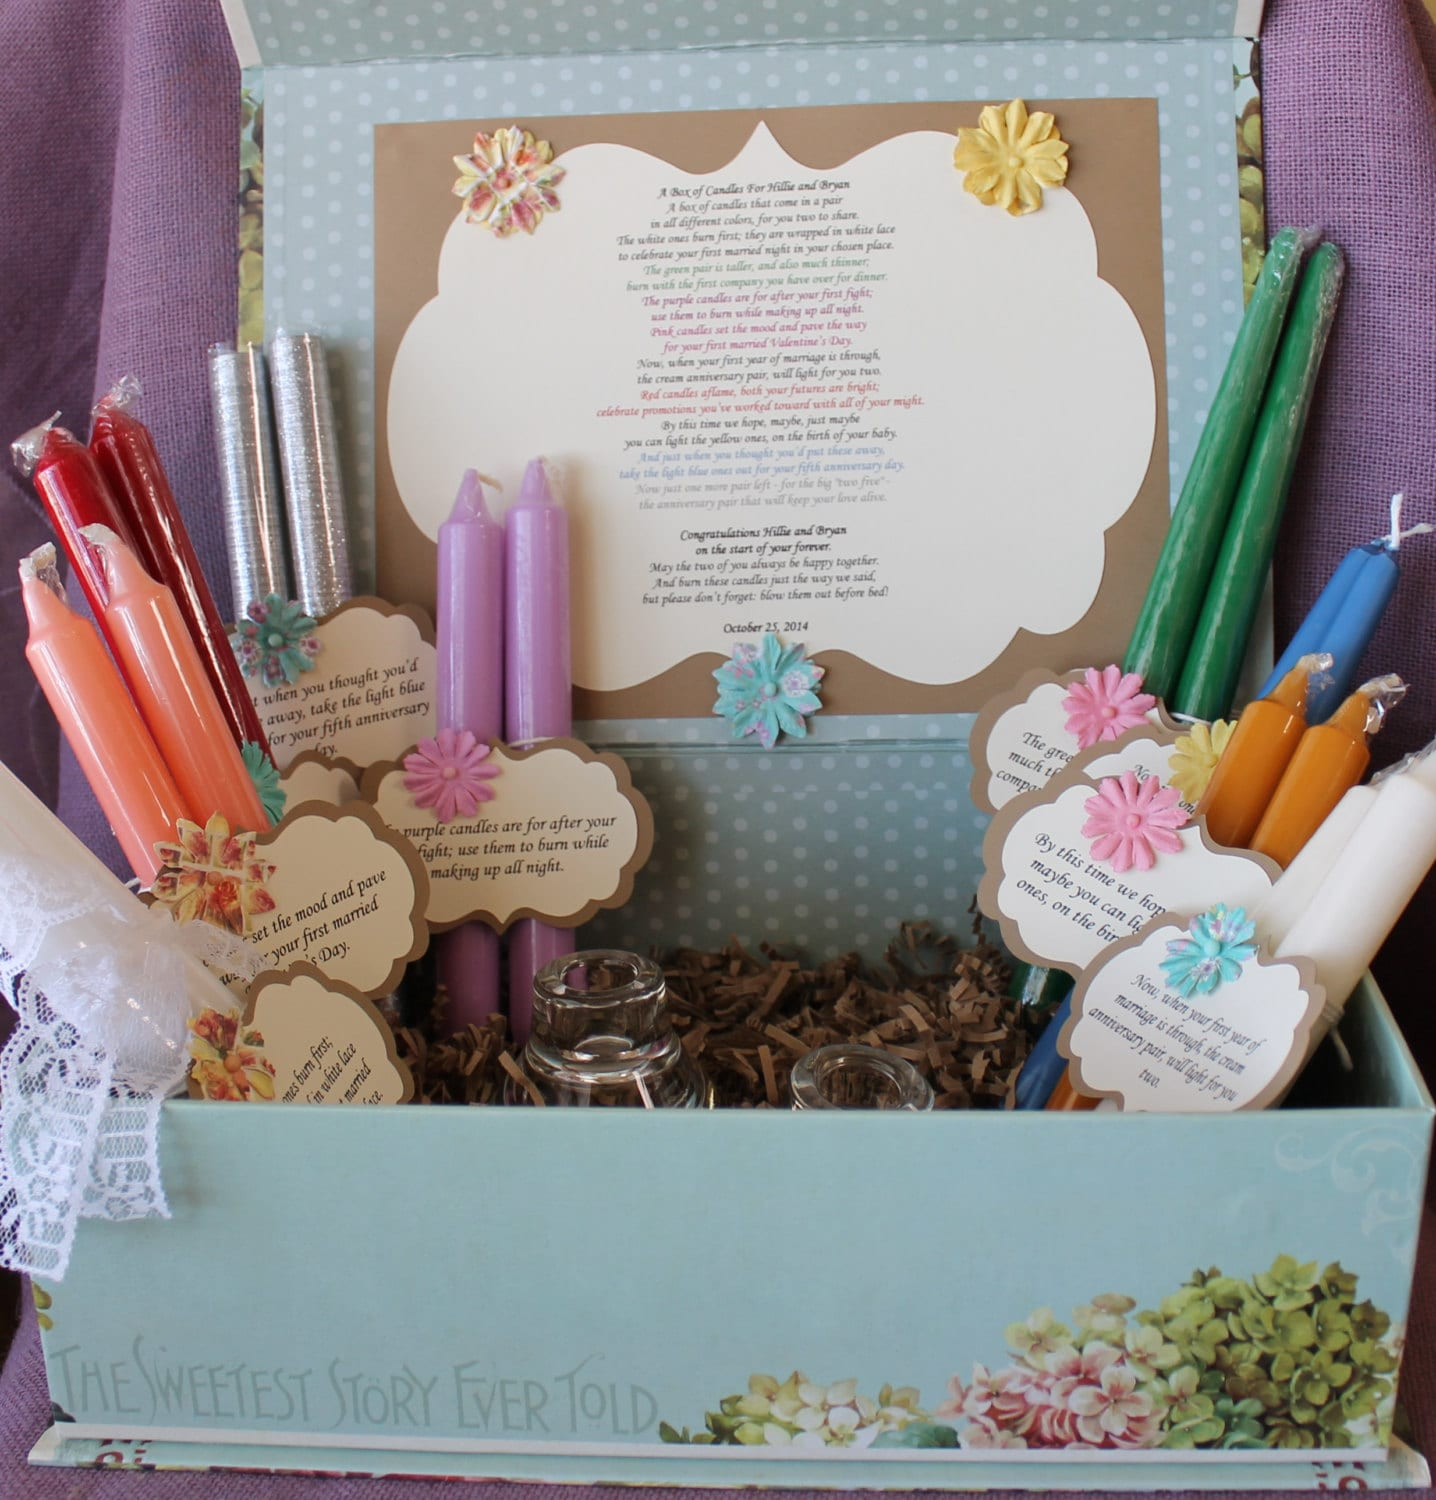 Wedding shower candle poem gift set bridal candle basket - Wedding bridal shower ...